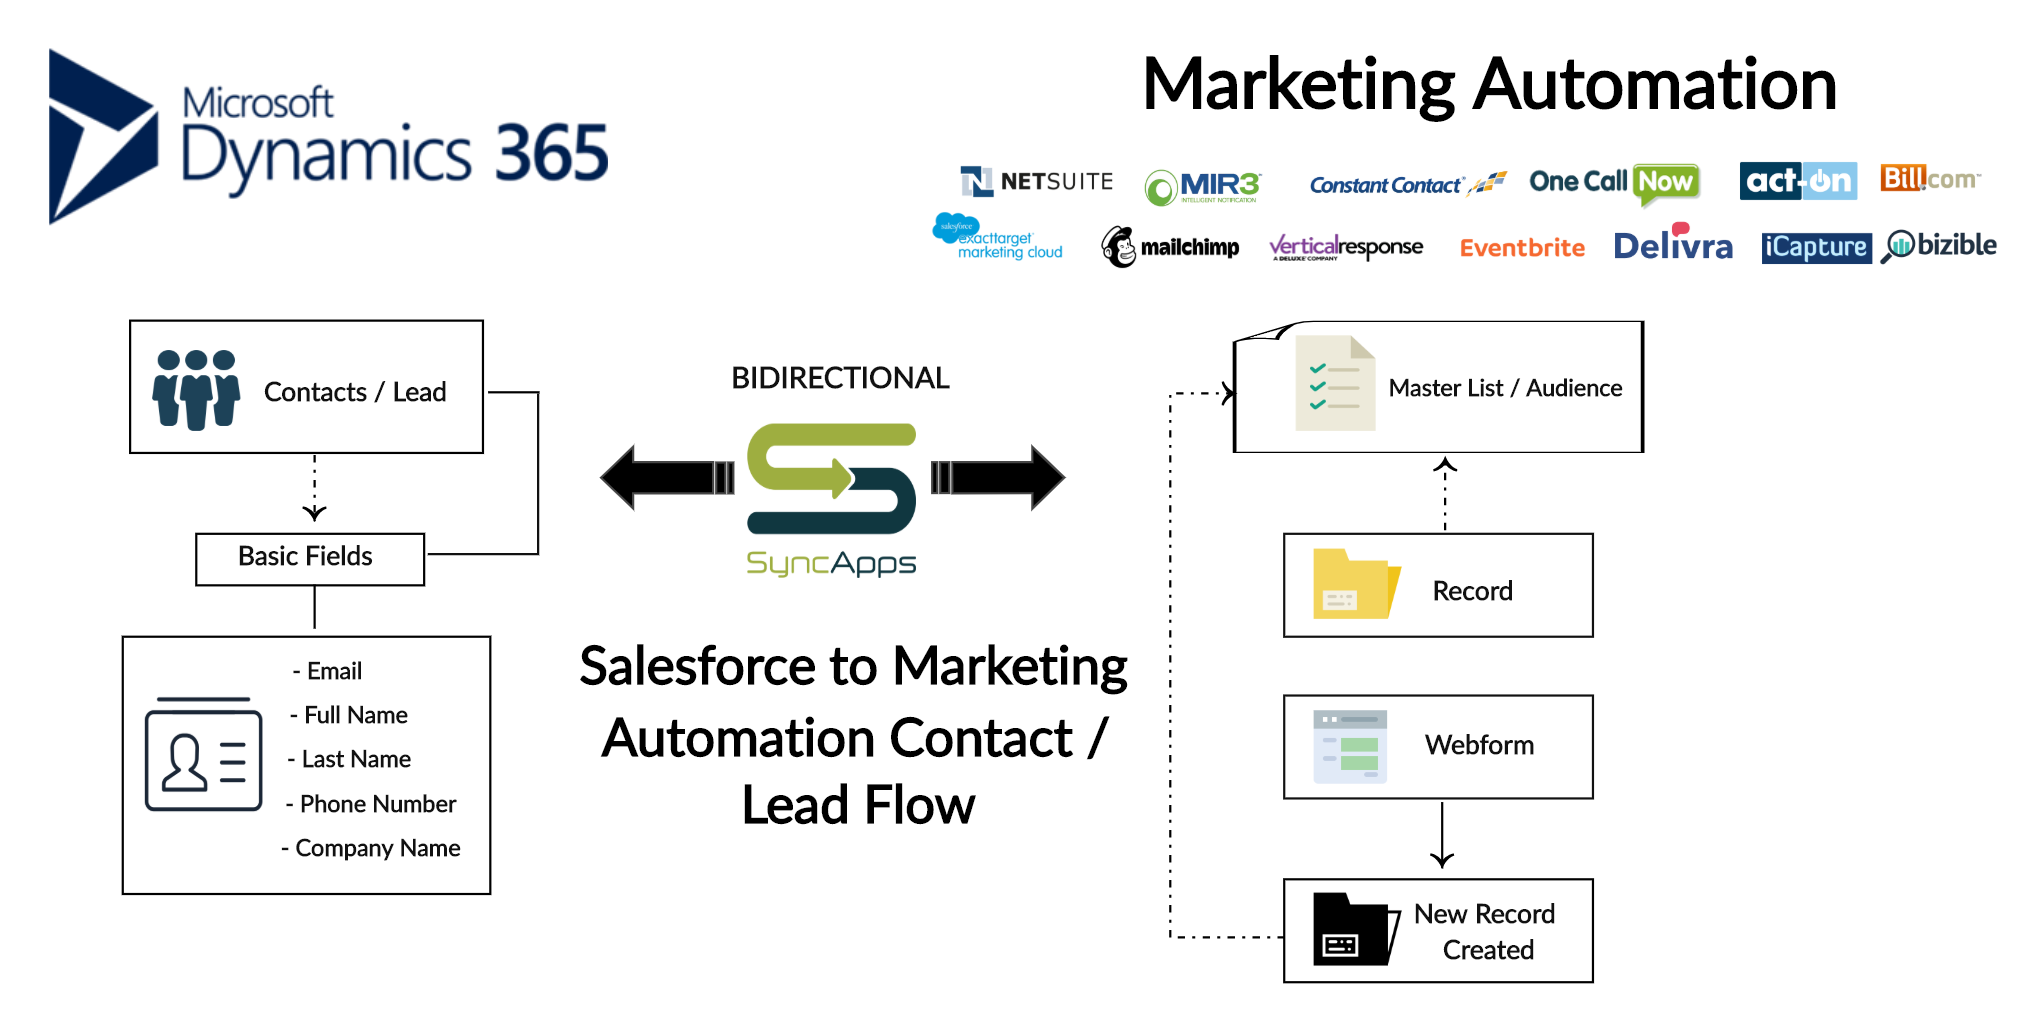 Dynamics_365_to_Markeiting_Automation_Lead_or_Contact_Flow___Creately.png